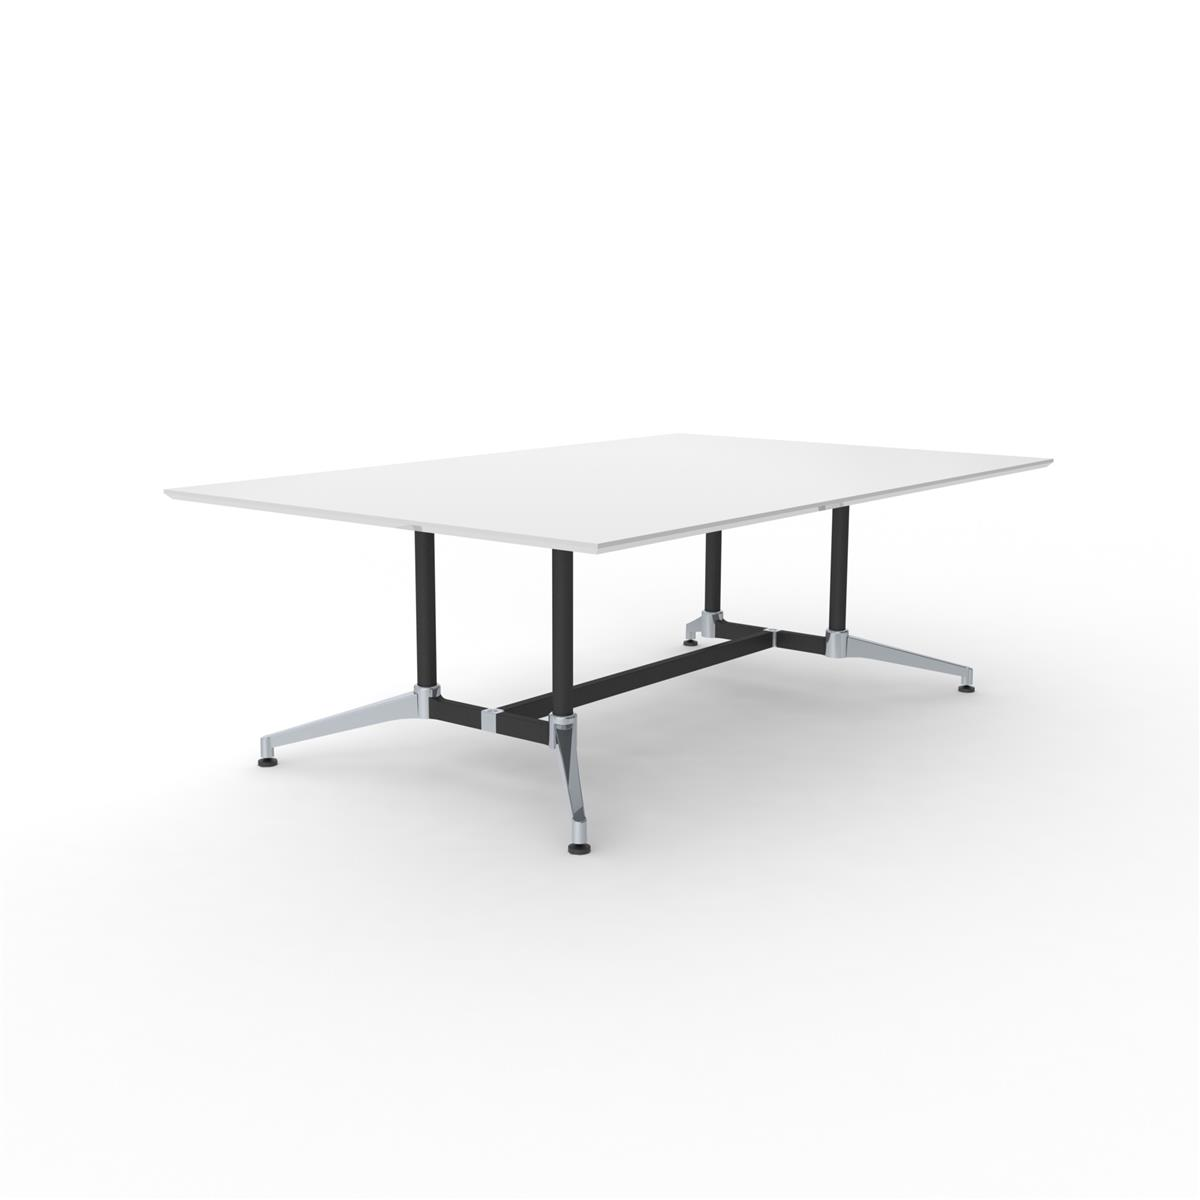 X1 Seamless Table 220 x 140 - hvit melamin & sort/aluminium